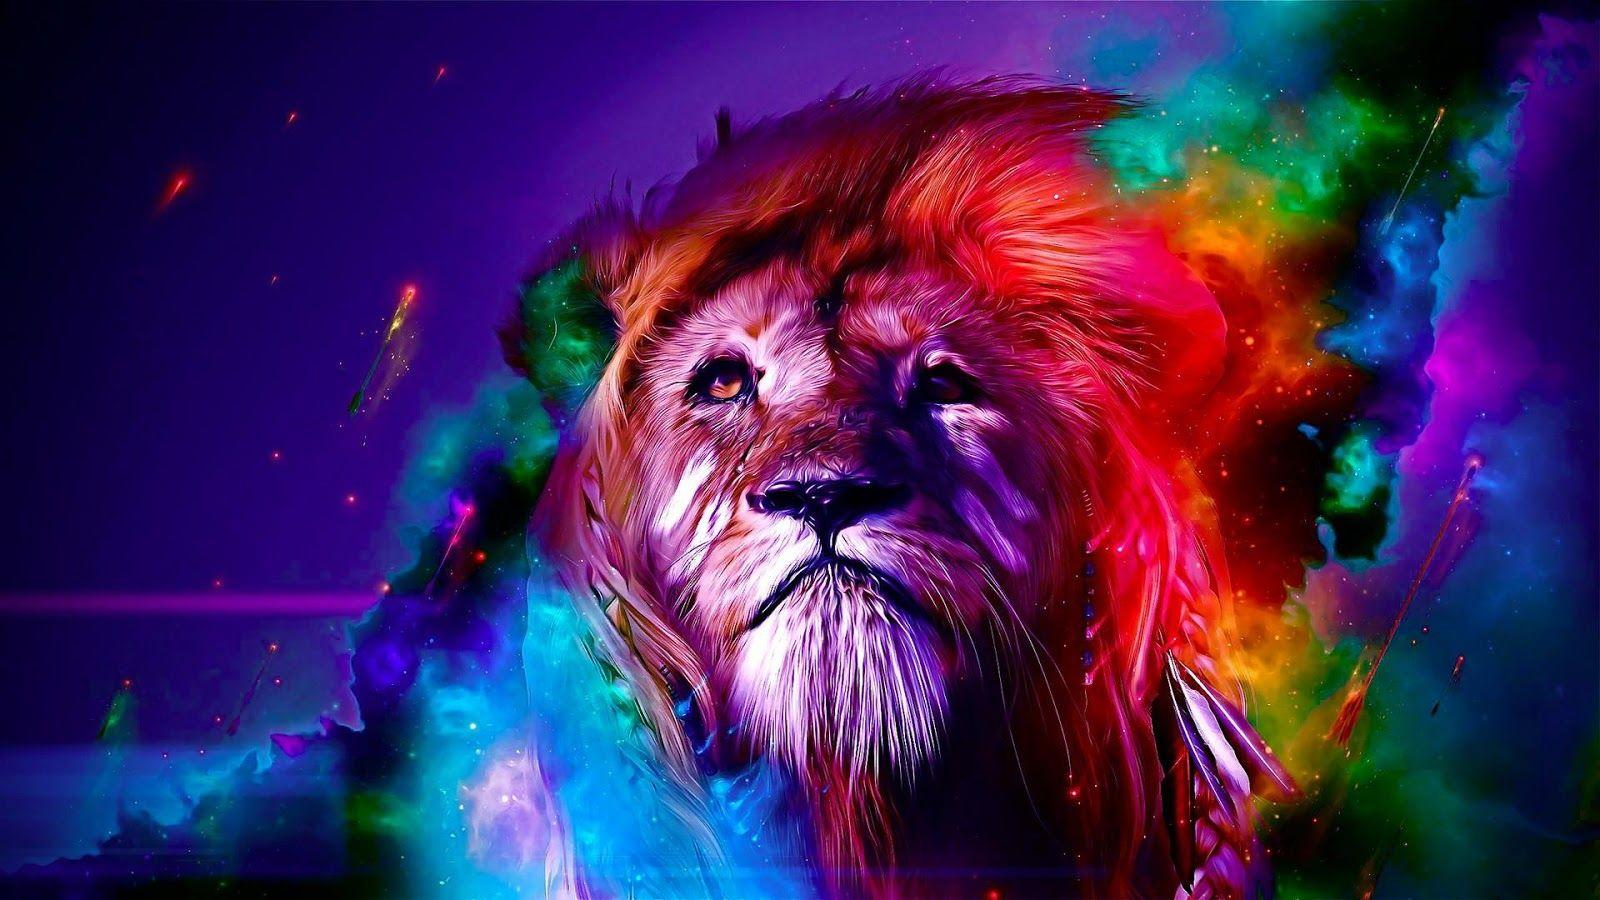 Rainbow Lion Wallpapers